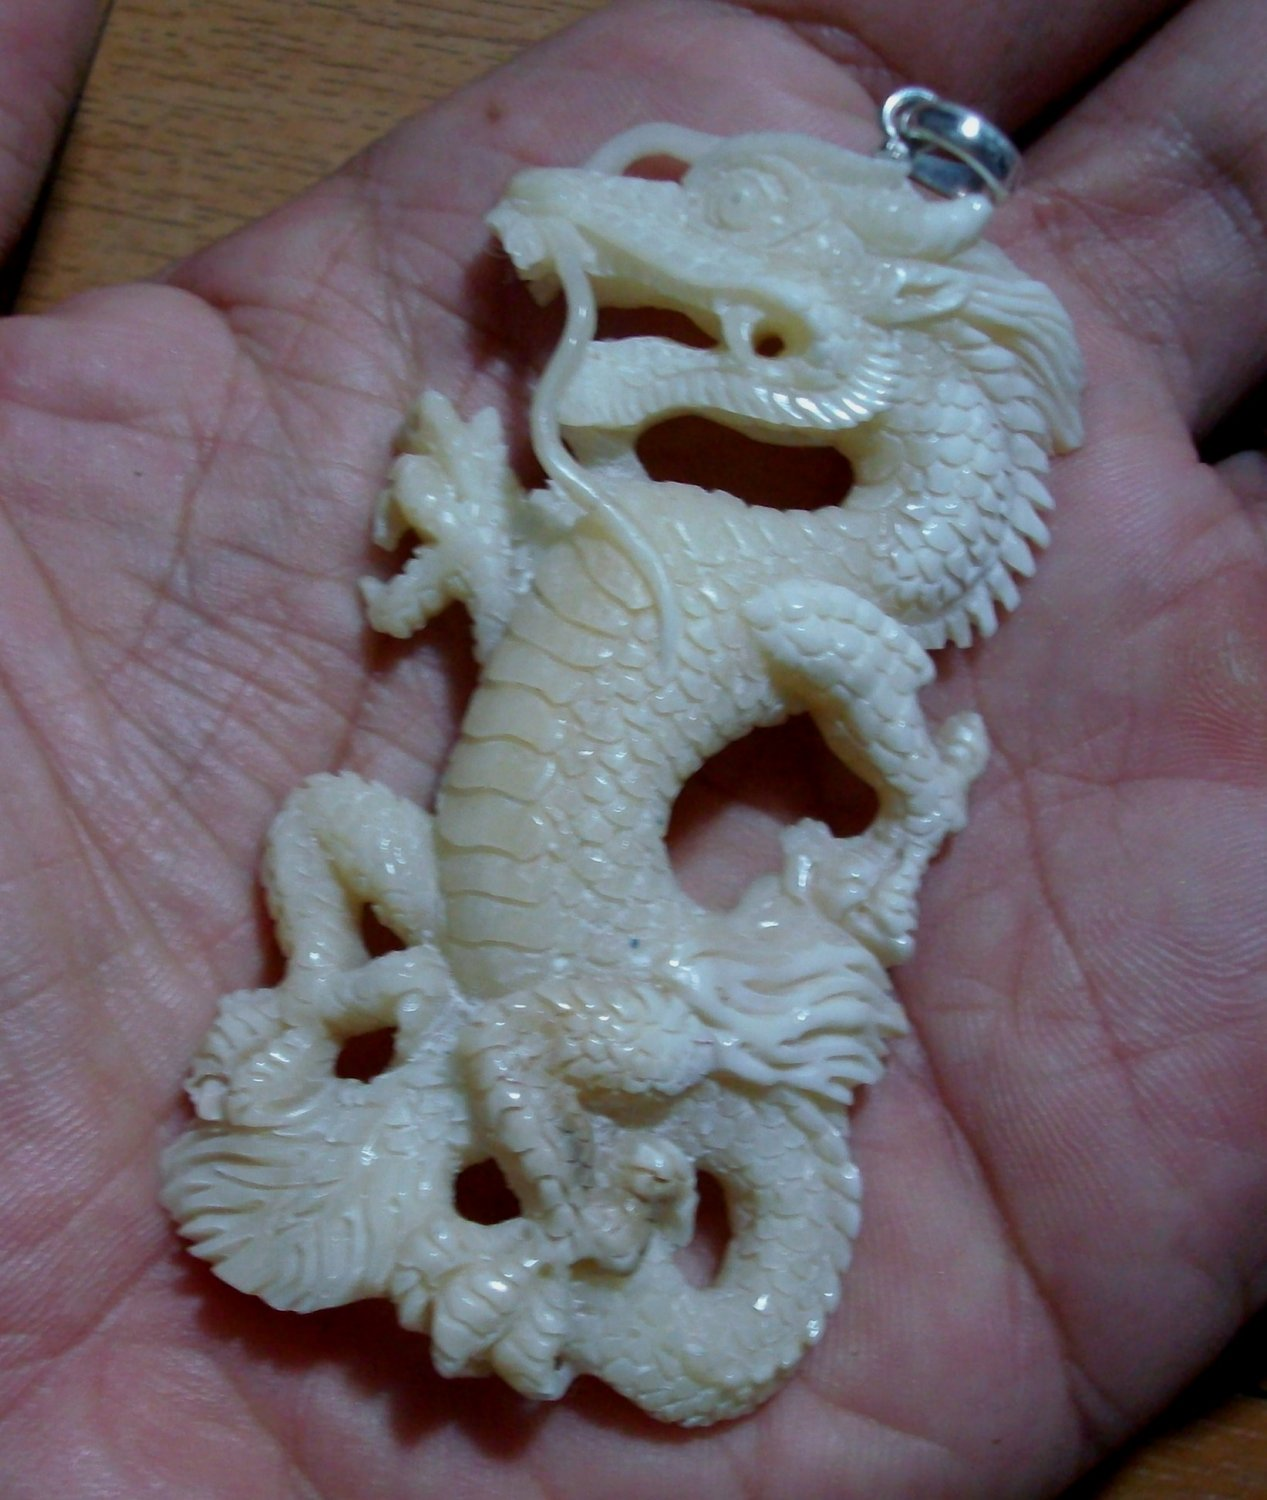 Bali Pendant Necklace China Dragon From Buffalo Bone Carving With Silver Bail 925 #q456